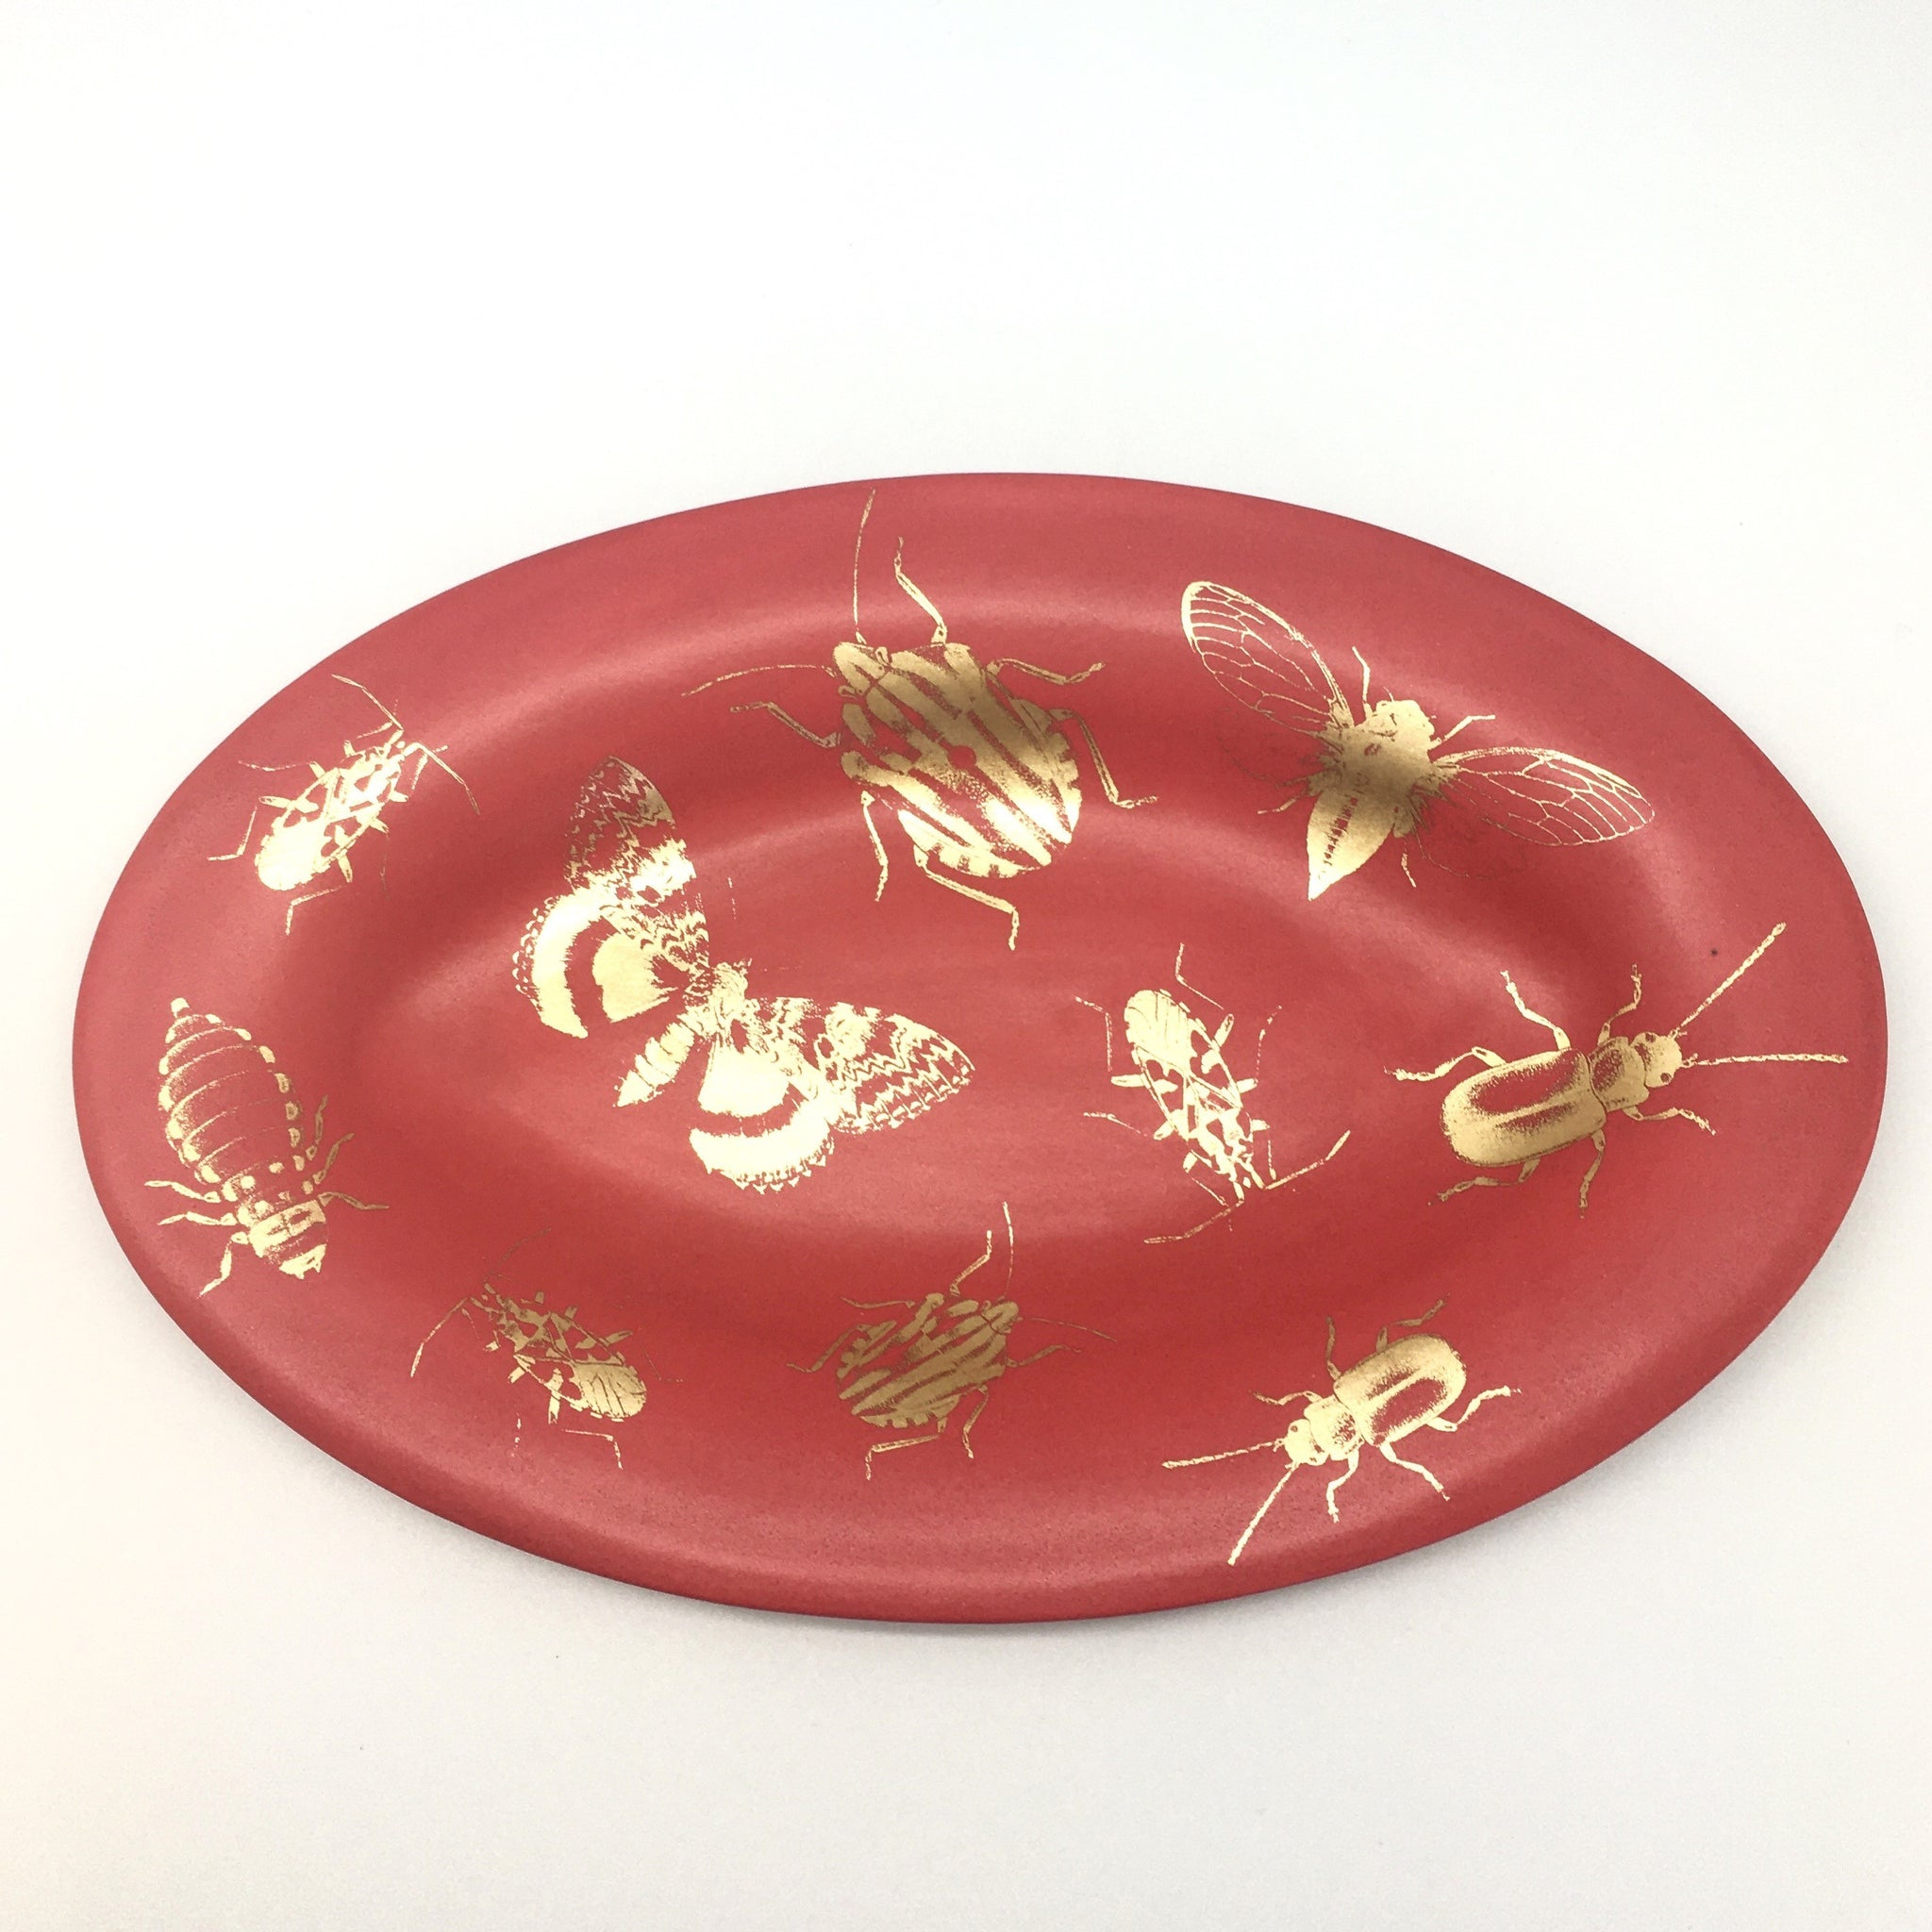 Red matte oval plate with golden bugs